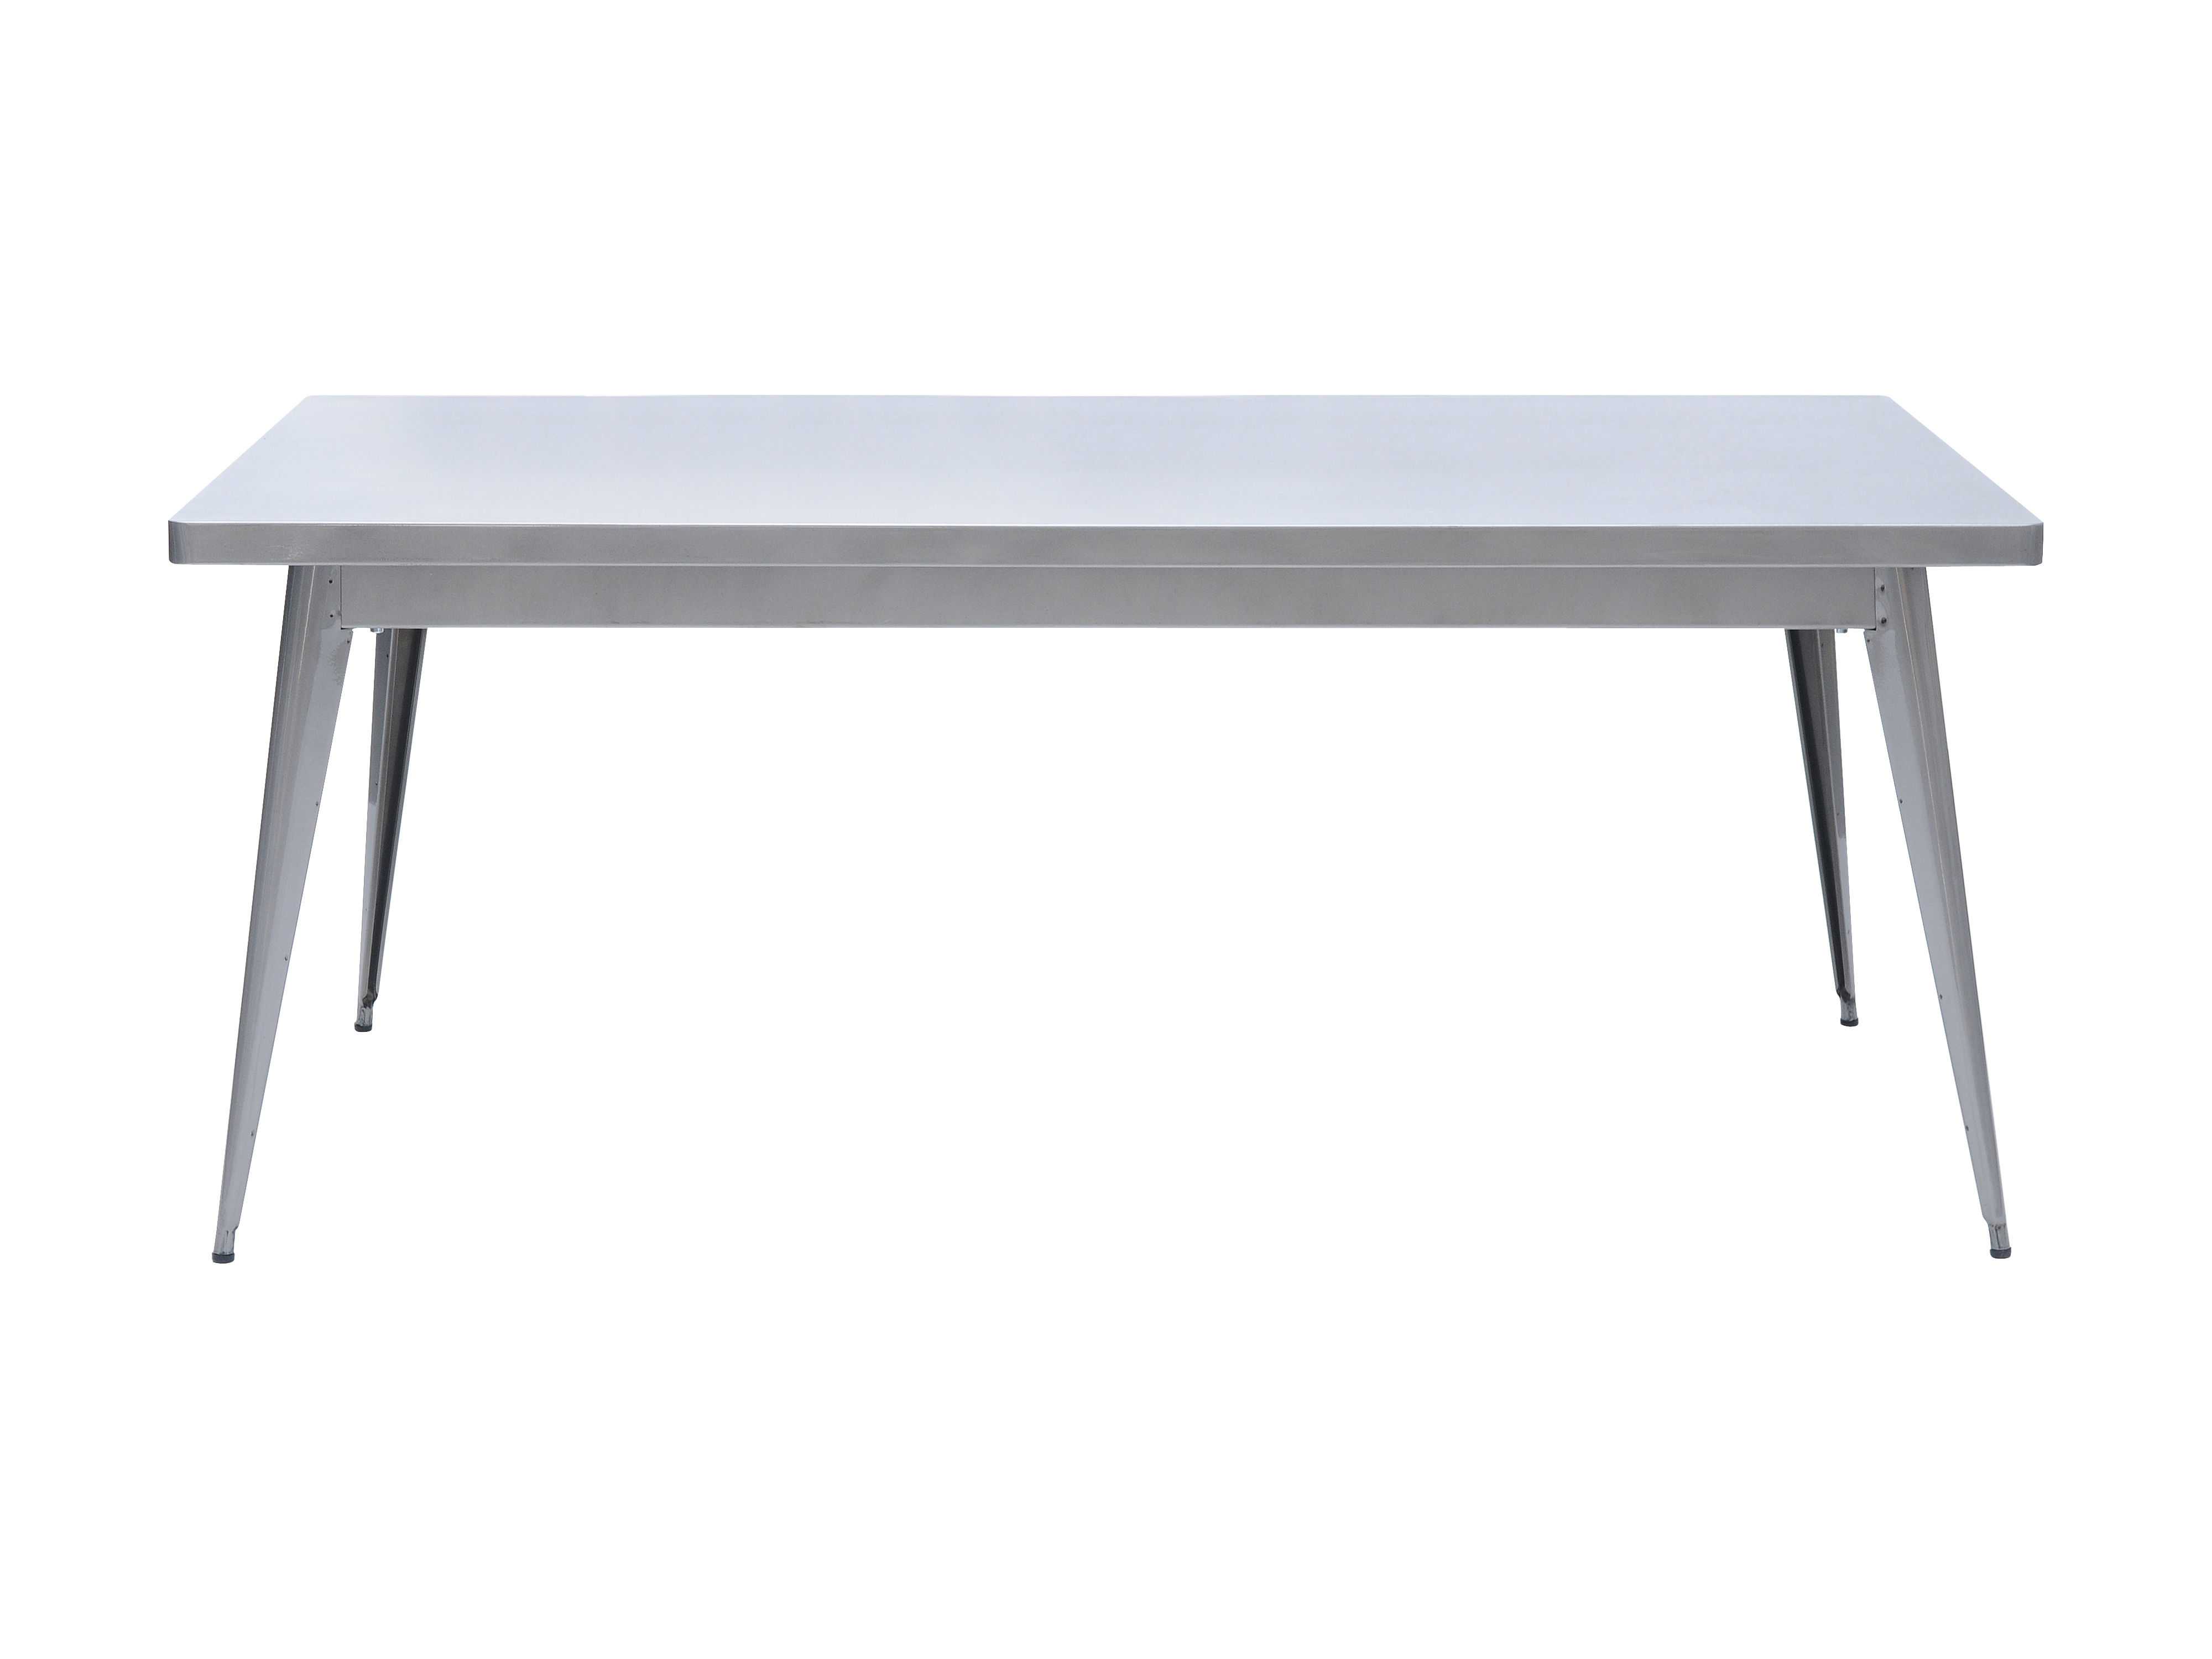 Back to school - Office furniture - 55 Table - L 130 x W 70 cm by Tolix - 130 x 70 cm - Raw glossy varnished - Gloss varnish raw steel